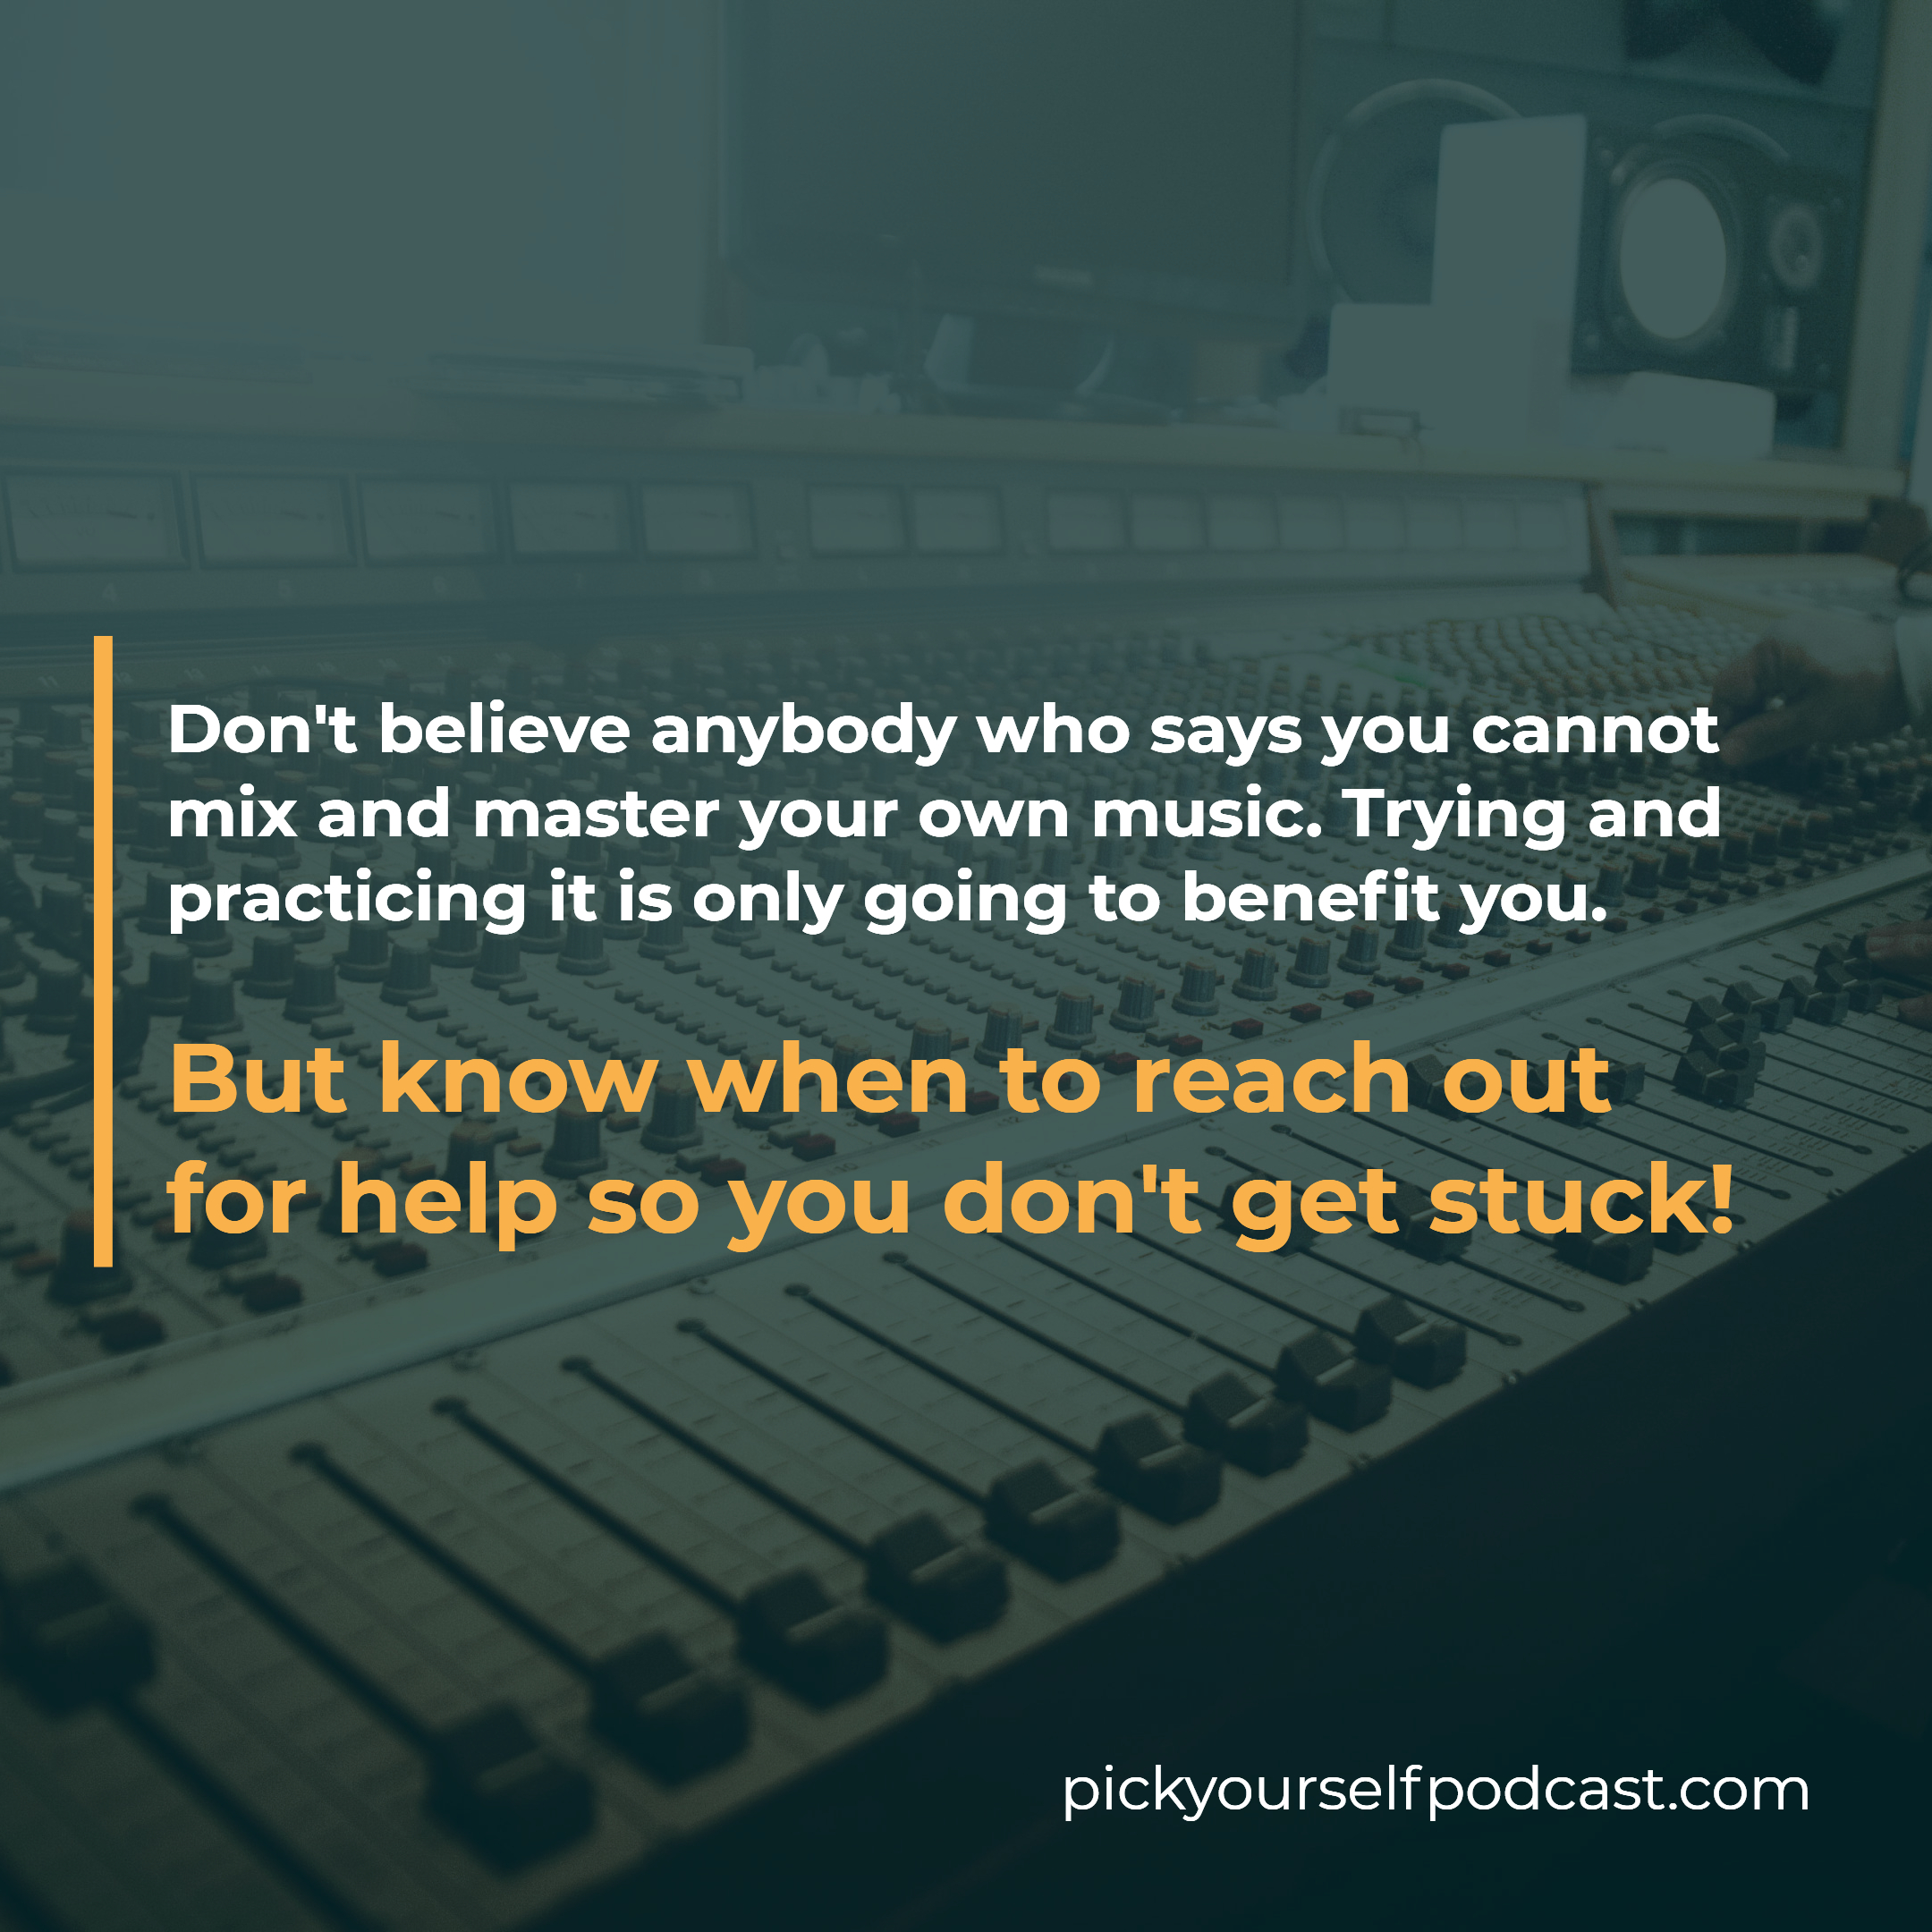 Should you mix and master your own music? Sure! But also know when to reach out for help.